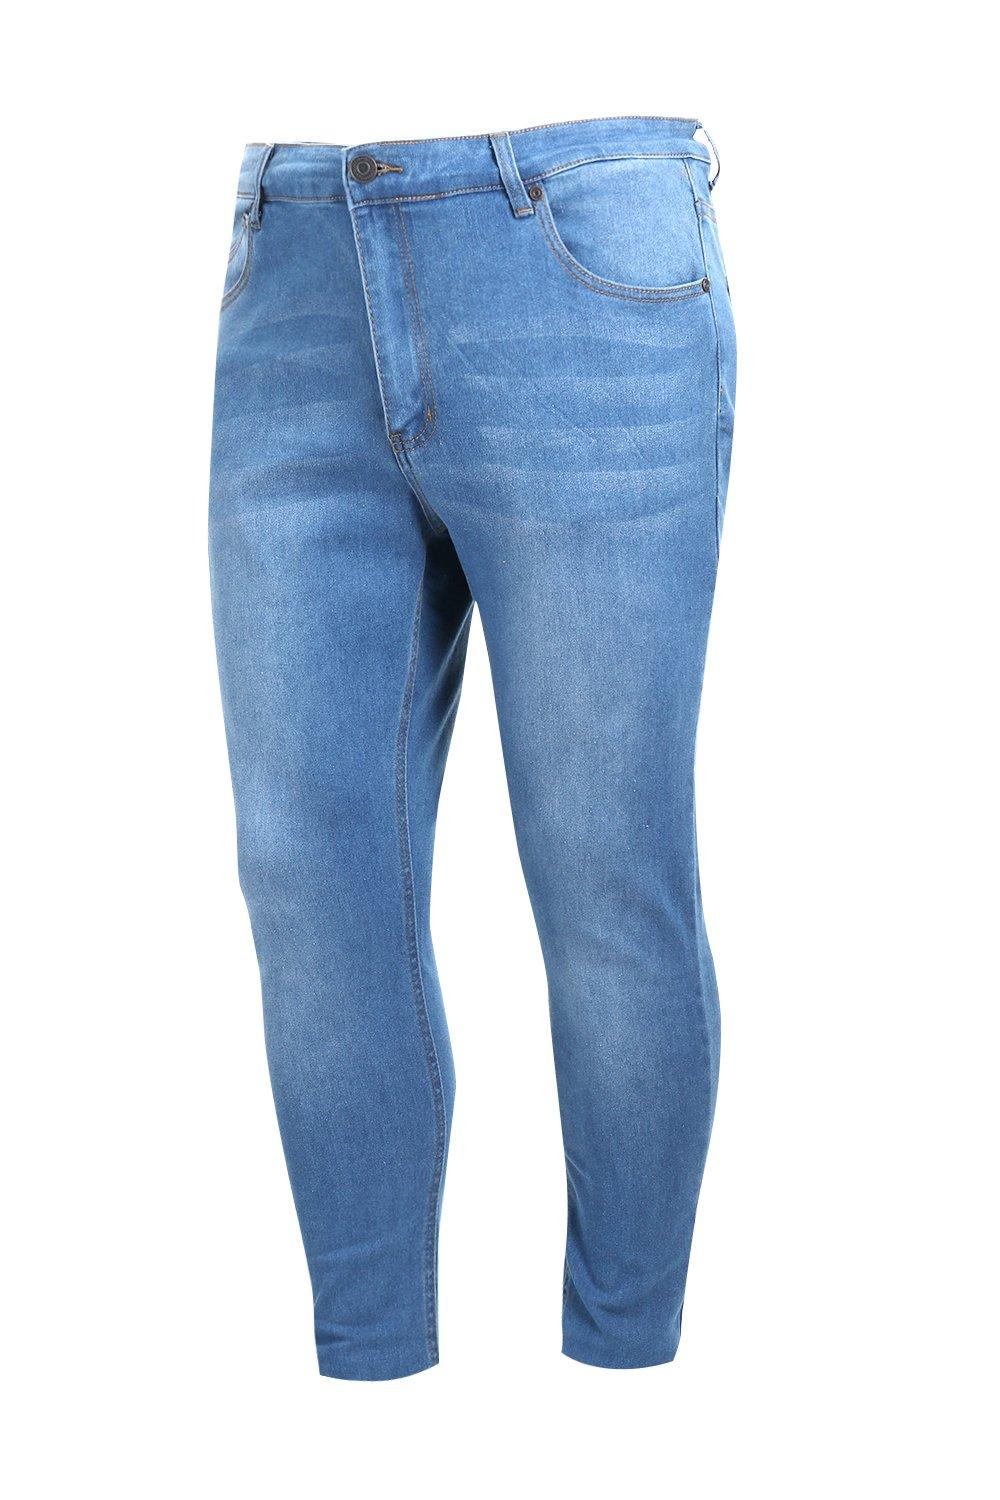 boohooMAN Big And Tall Blue Slim Fit Washed Jeans